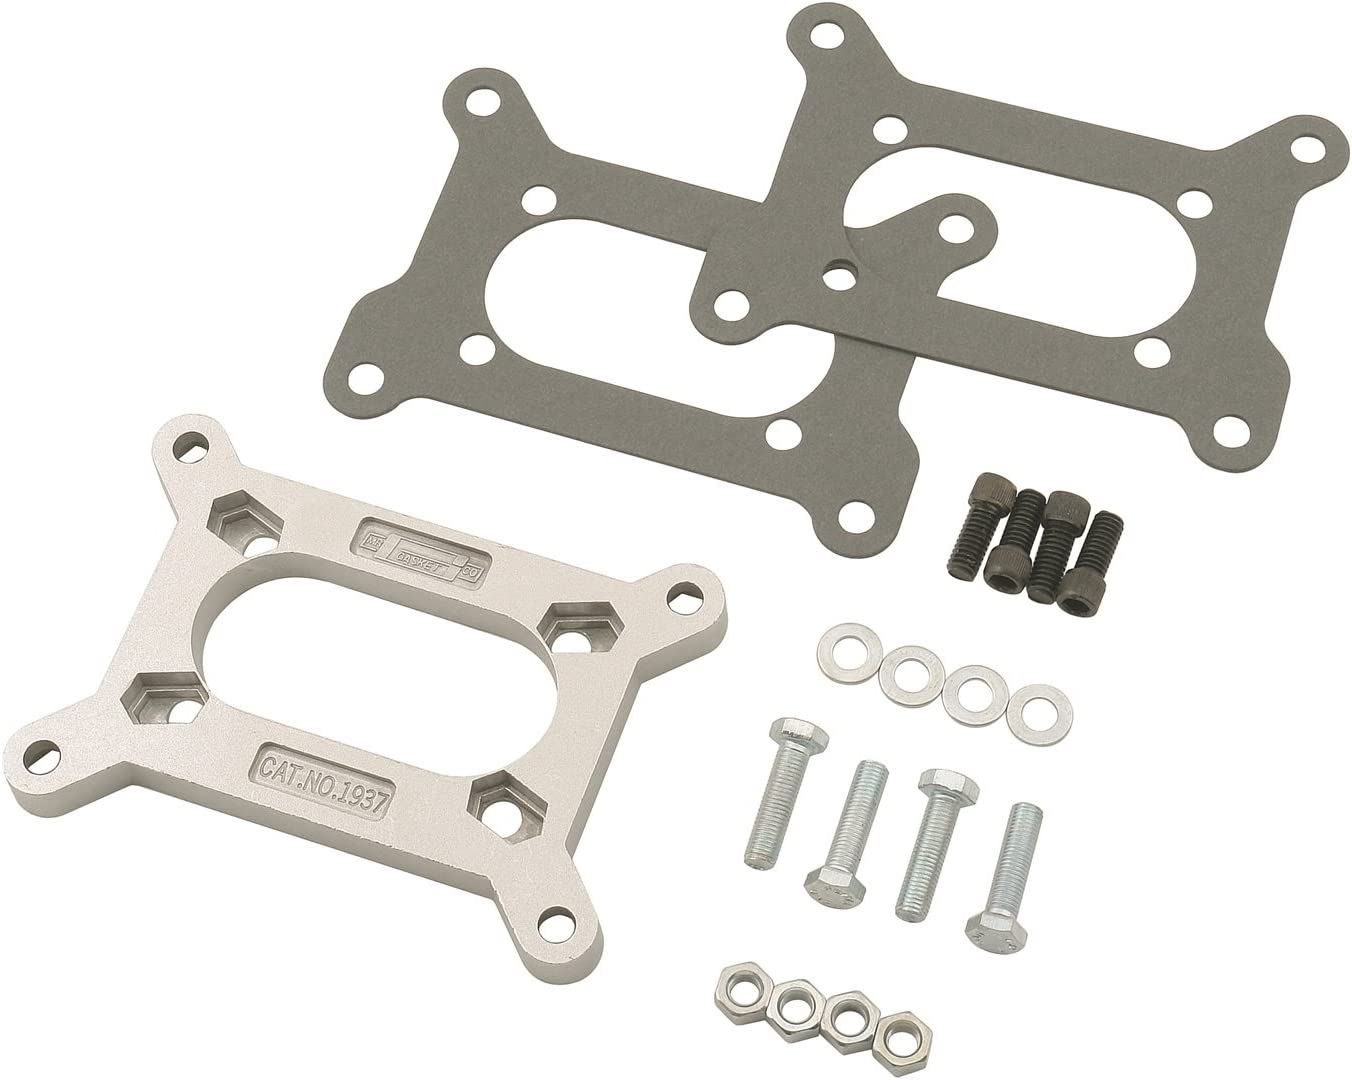 NEW Carter Rochester 4 Barrel to Holley Carburetor Adapter w// Hardware /& Gaskets